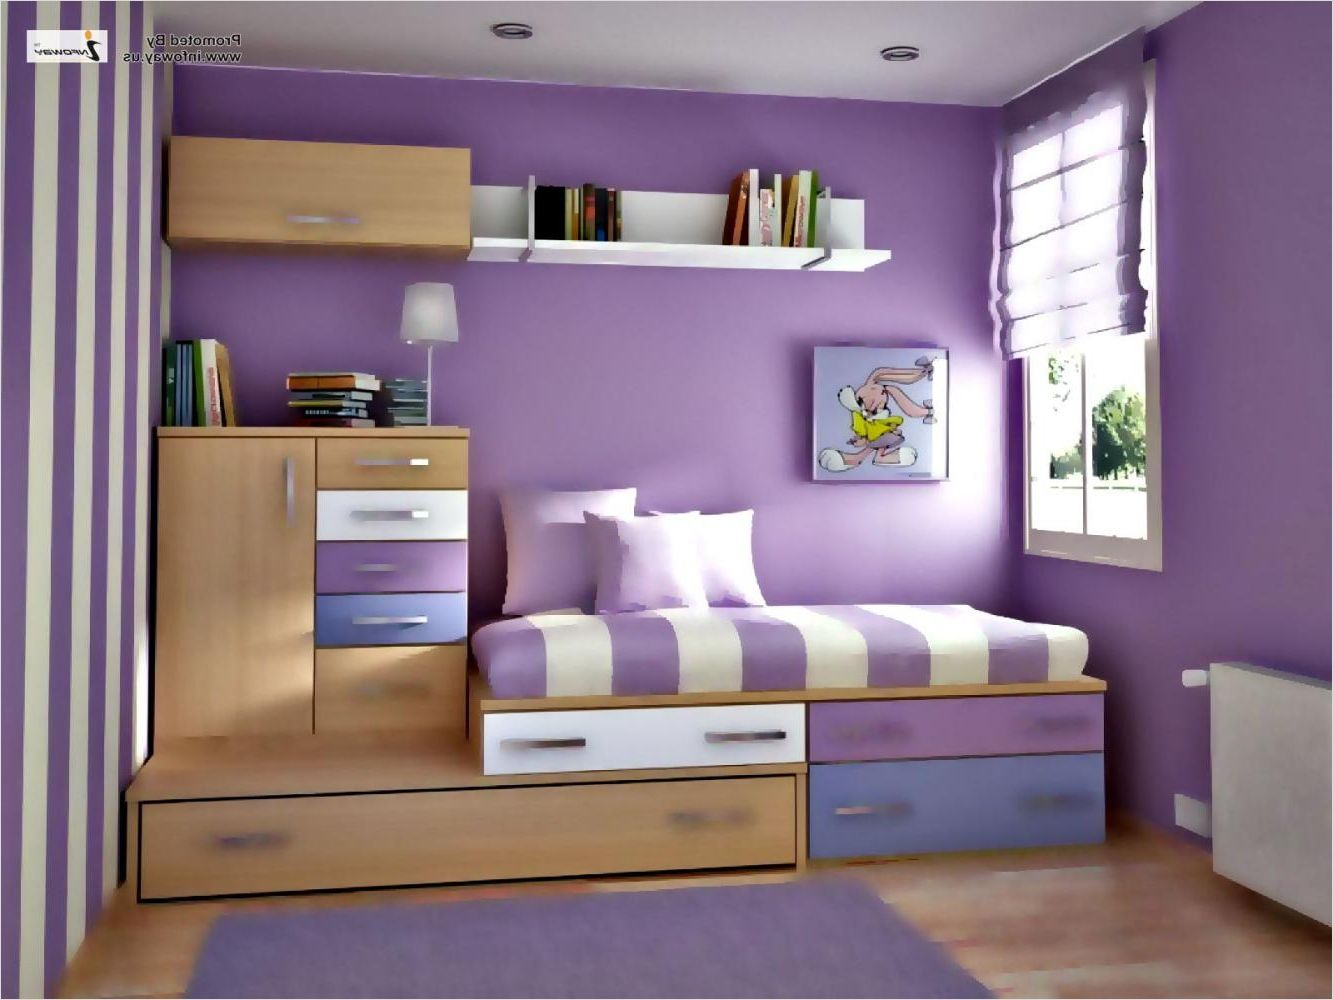 11 Small Bedroom Ideas Amazing for the Modern Small Home  Purple